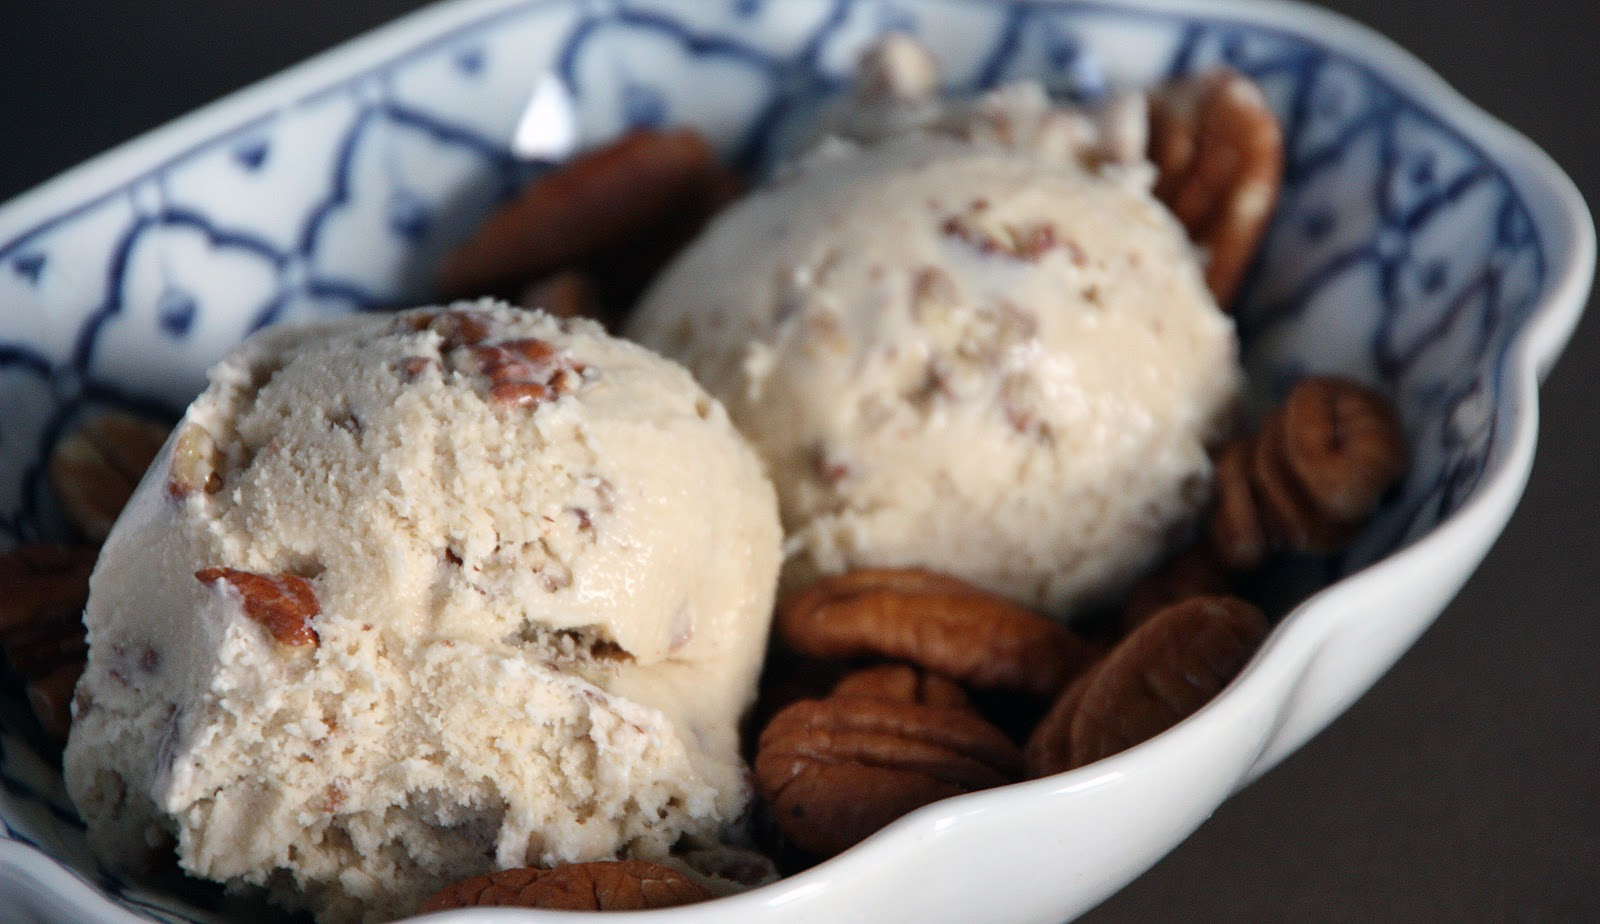 sprinkle charms butter pecan ice cream